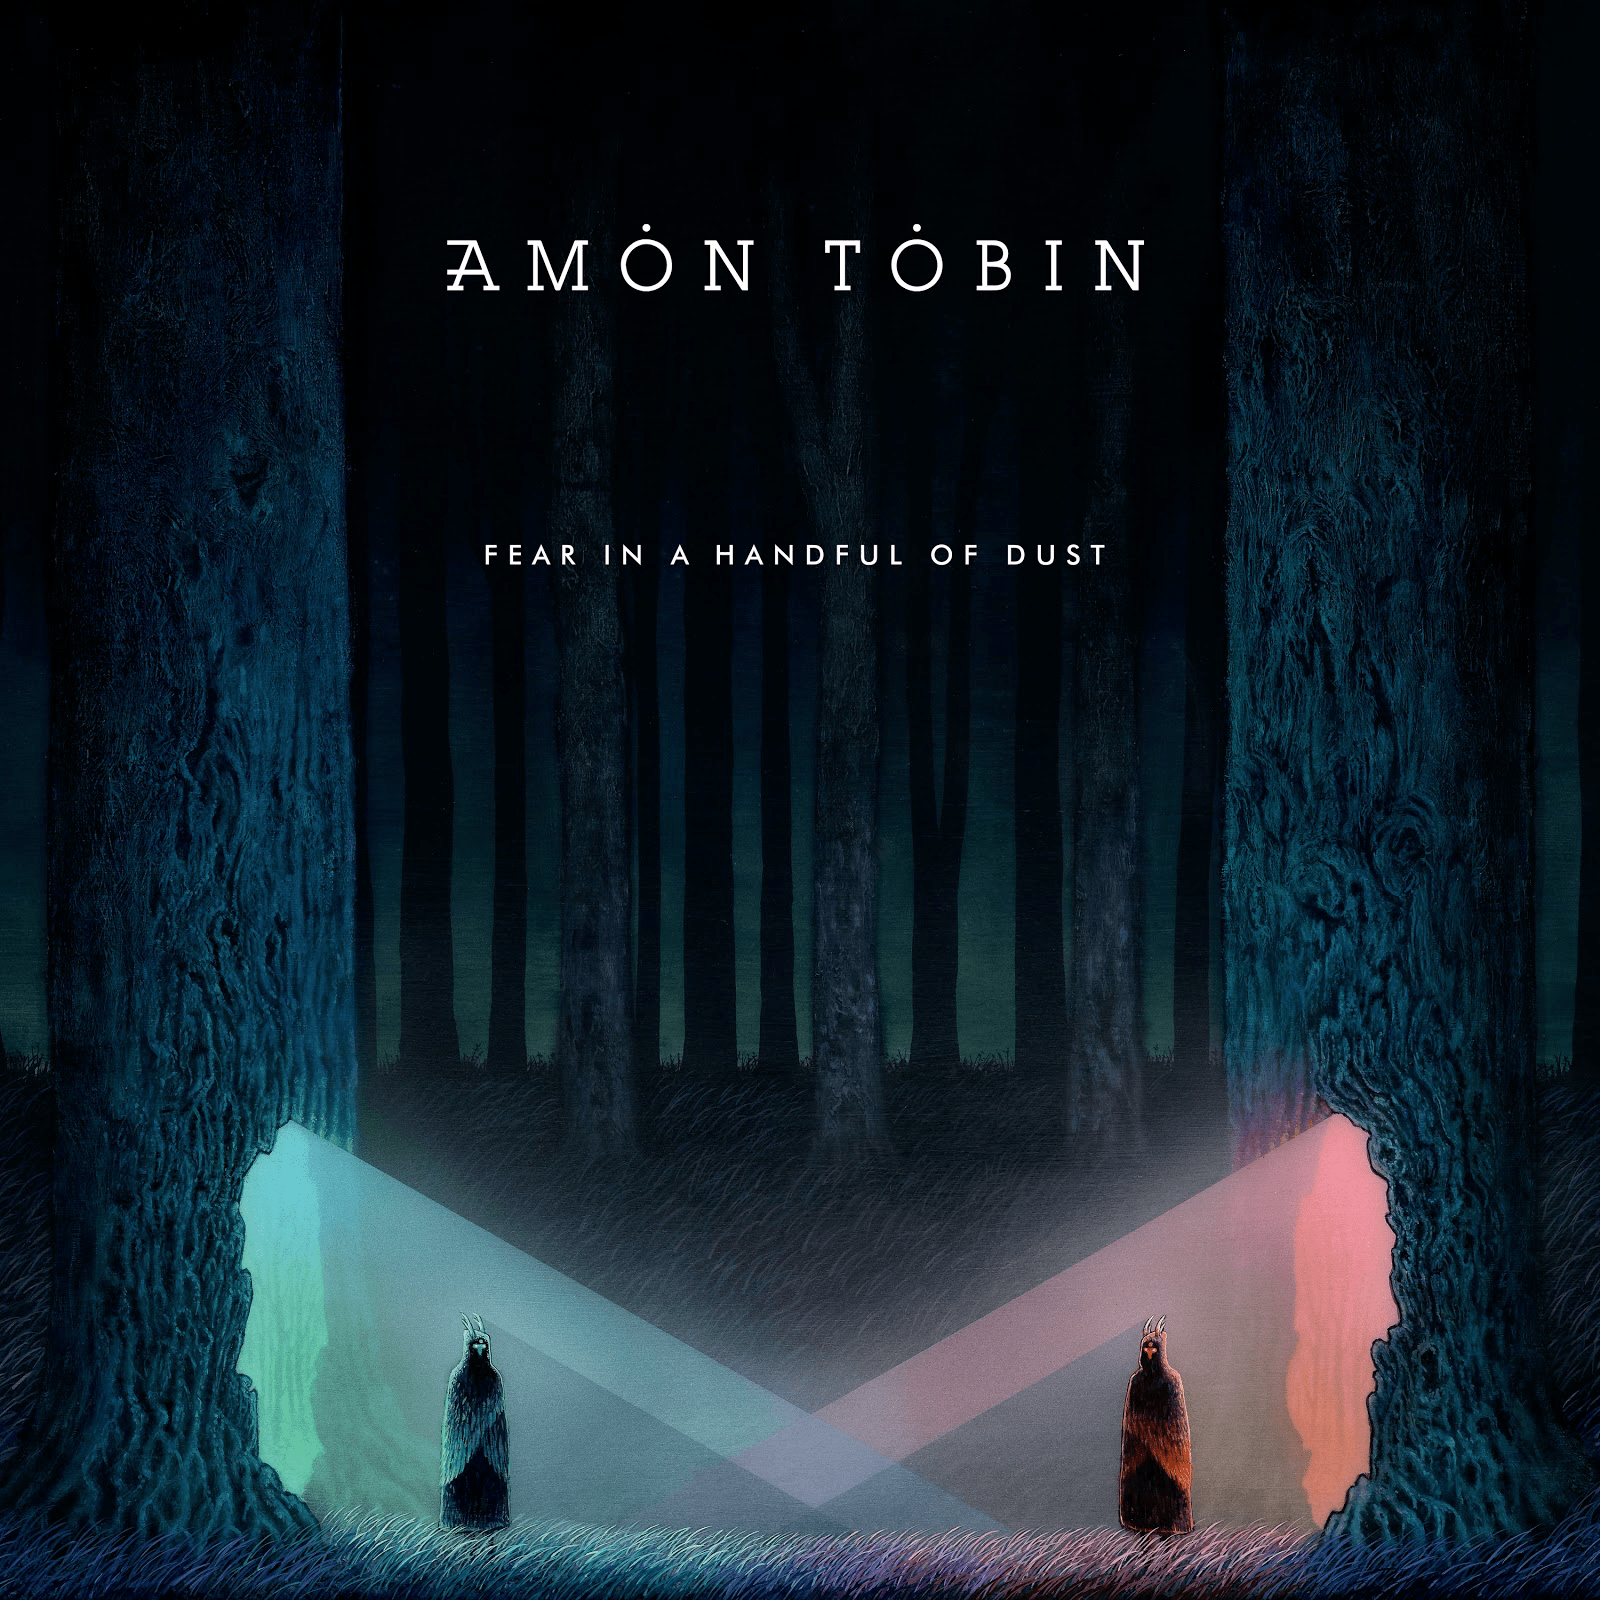 """Amon Tobin new track """"On a Hilltop Sat the Moon"""" off album 'Fear in a Handful of Dust'"""